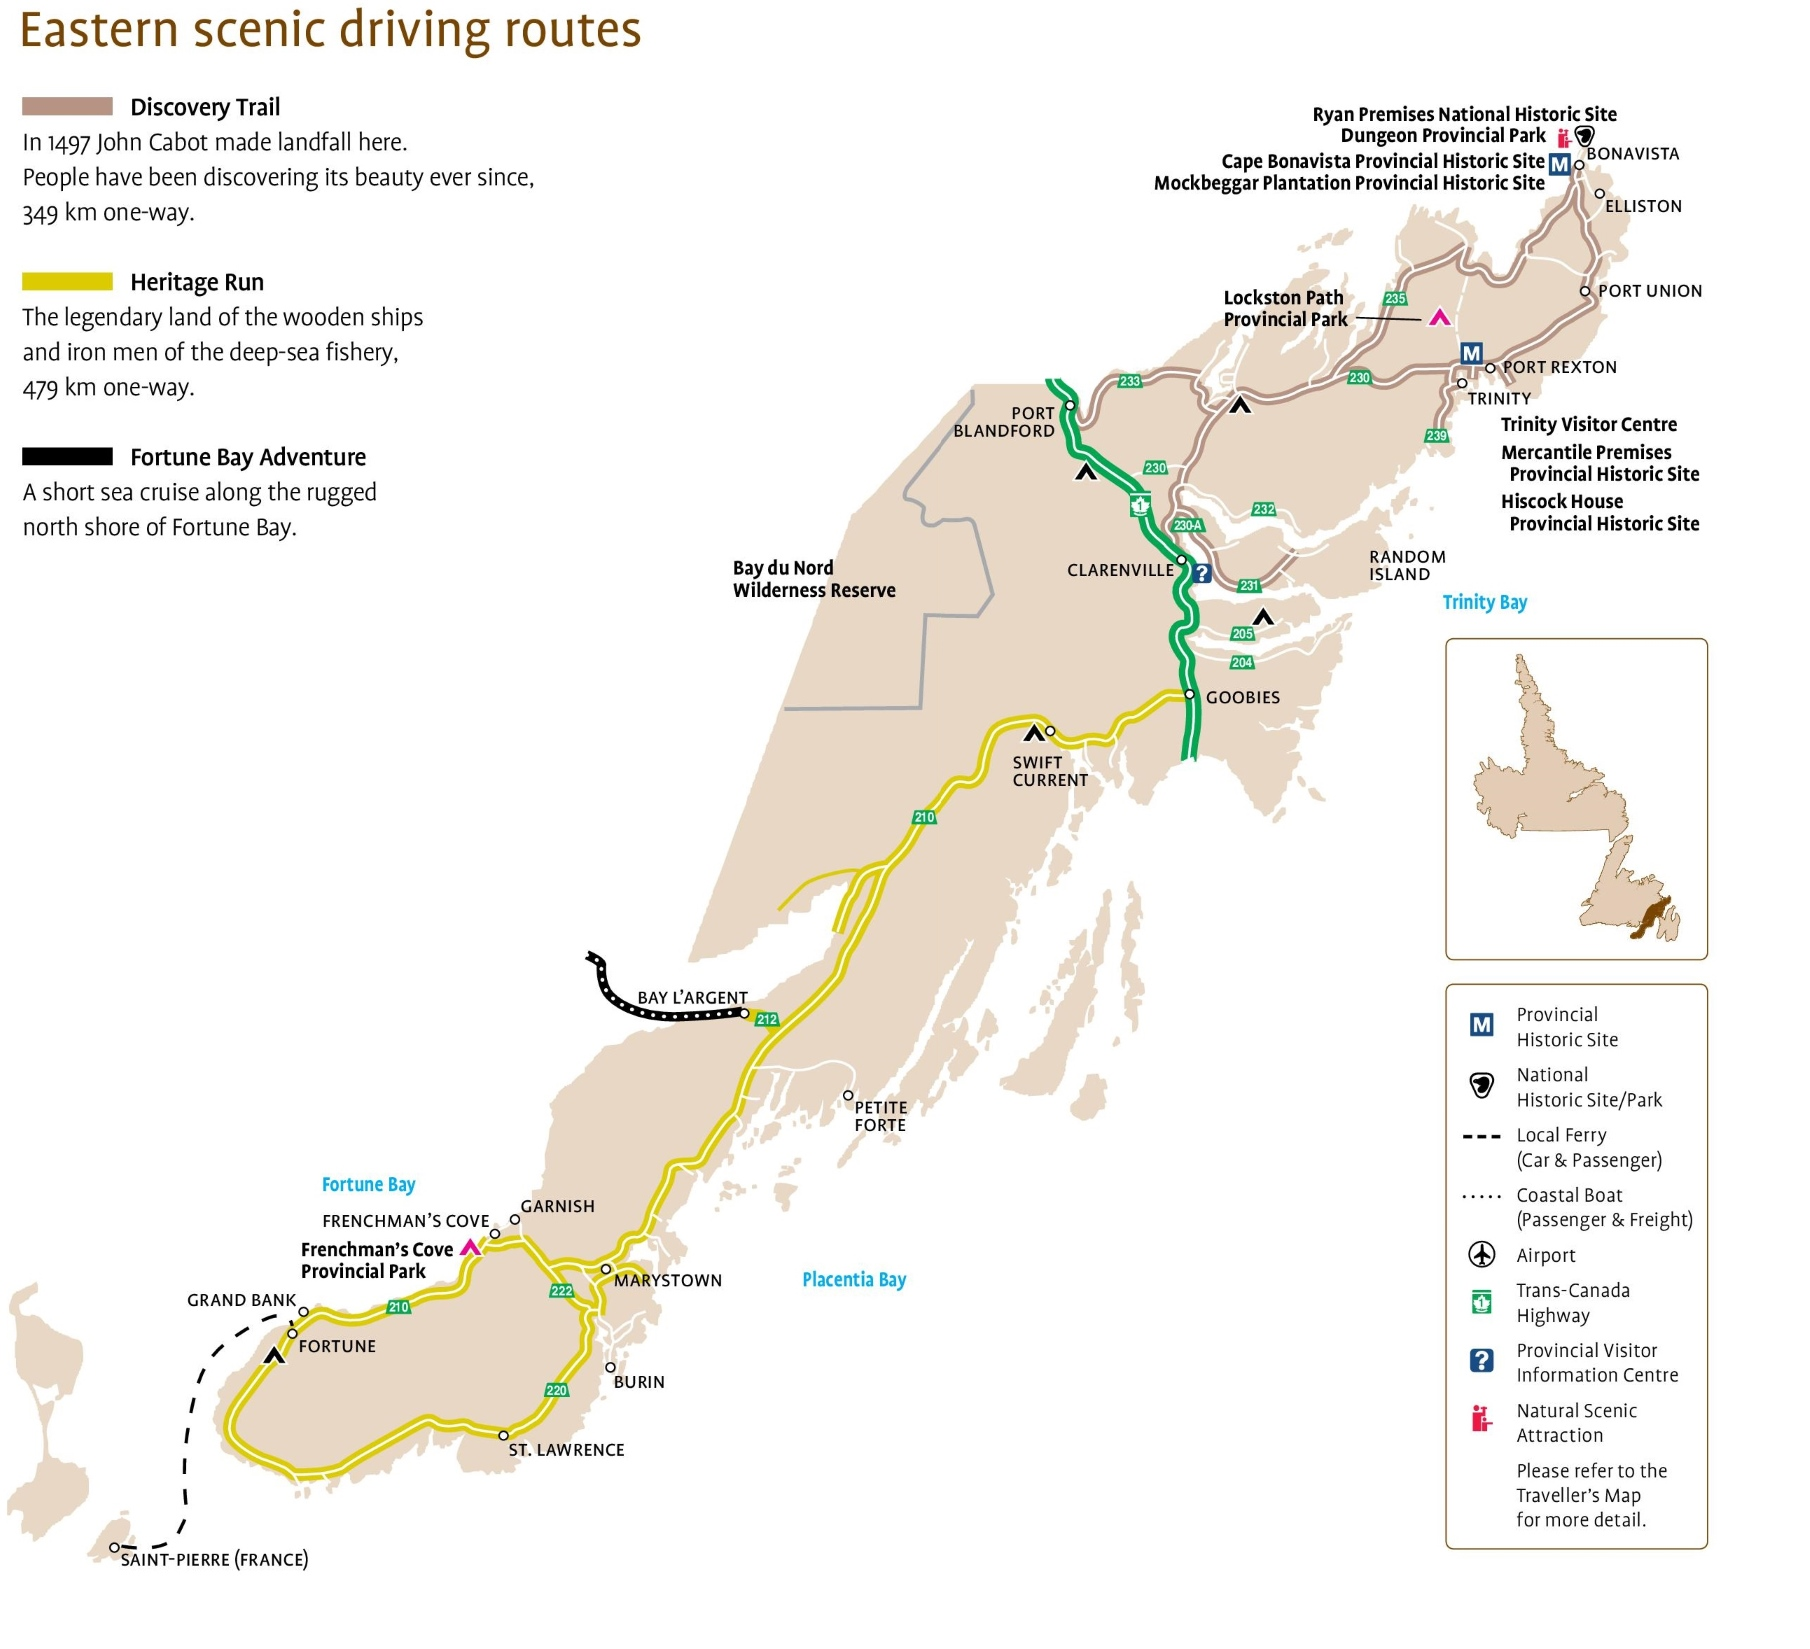 Eastern Newfoundland Scenic Driving Routes Map - Newfoundland map